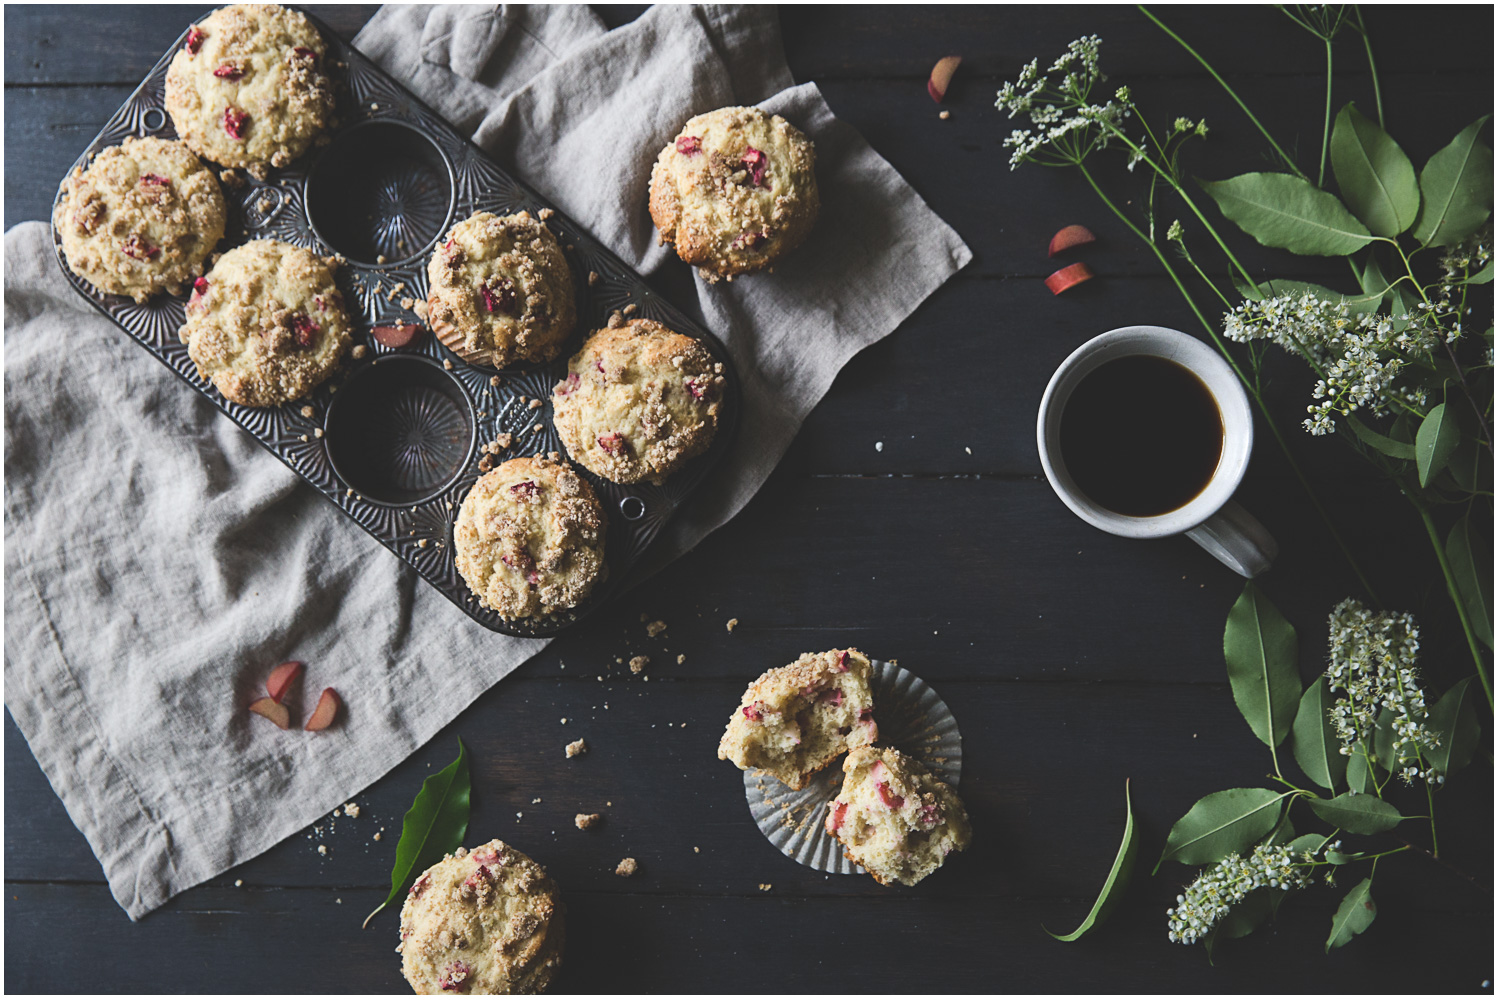 Rhubarb Muffins with Cardamom and Streusel Topping